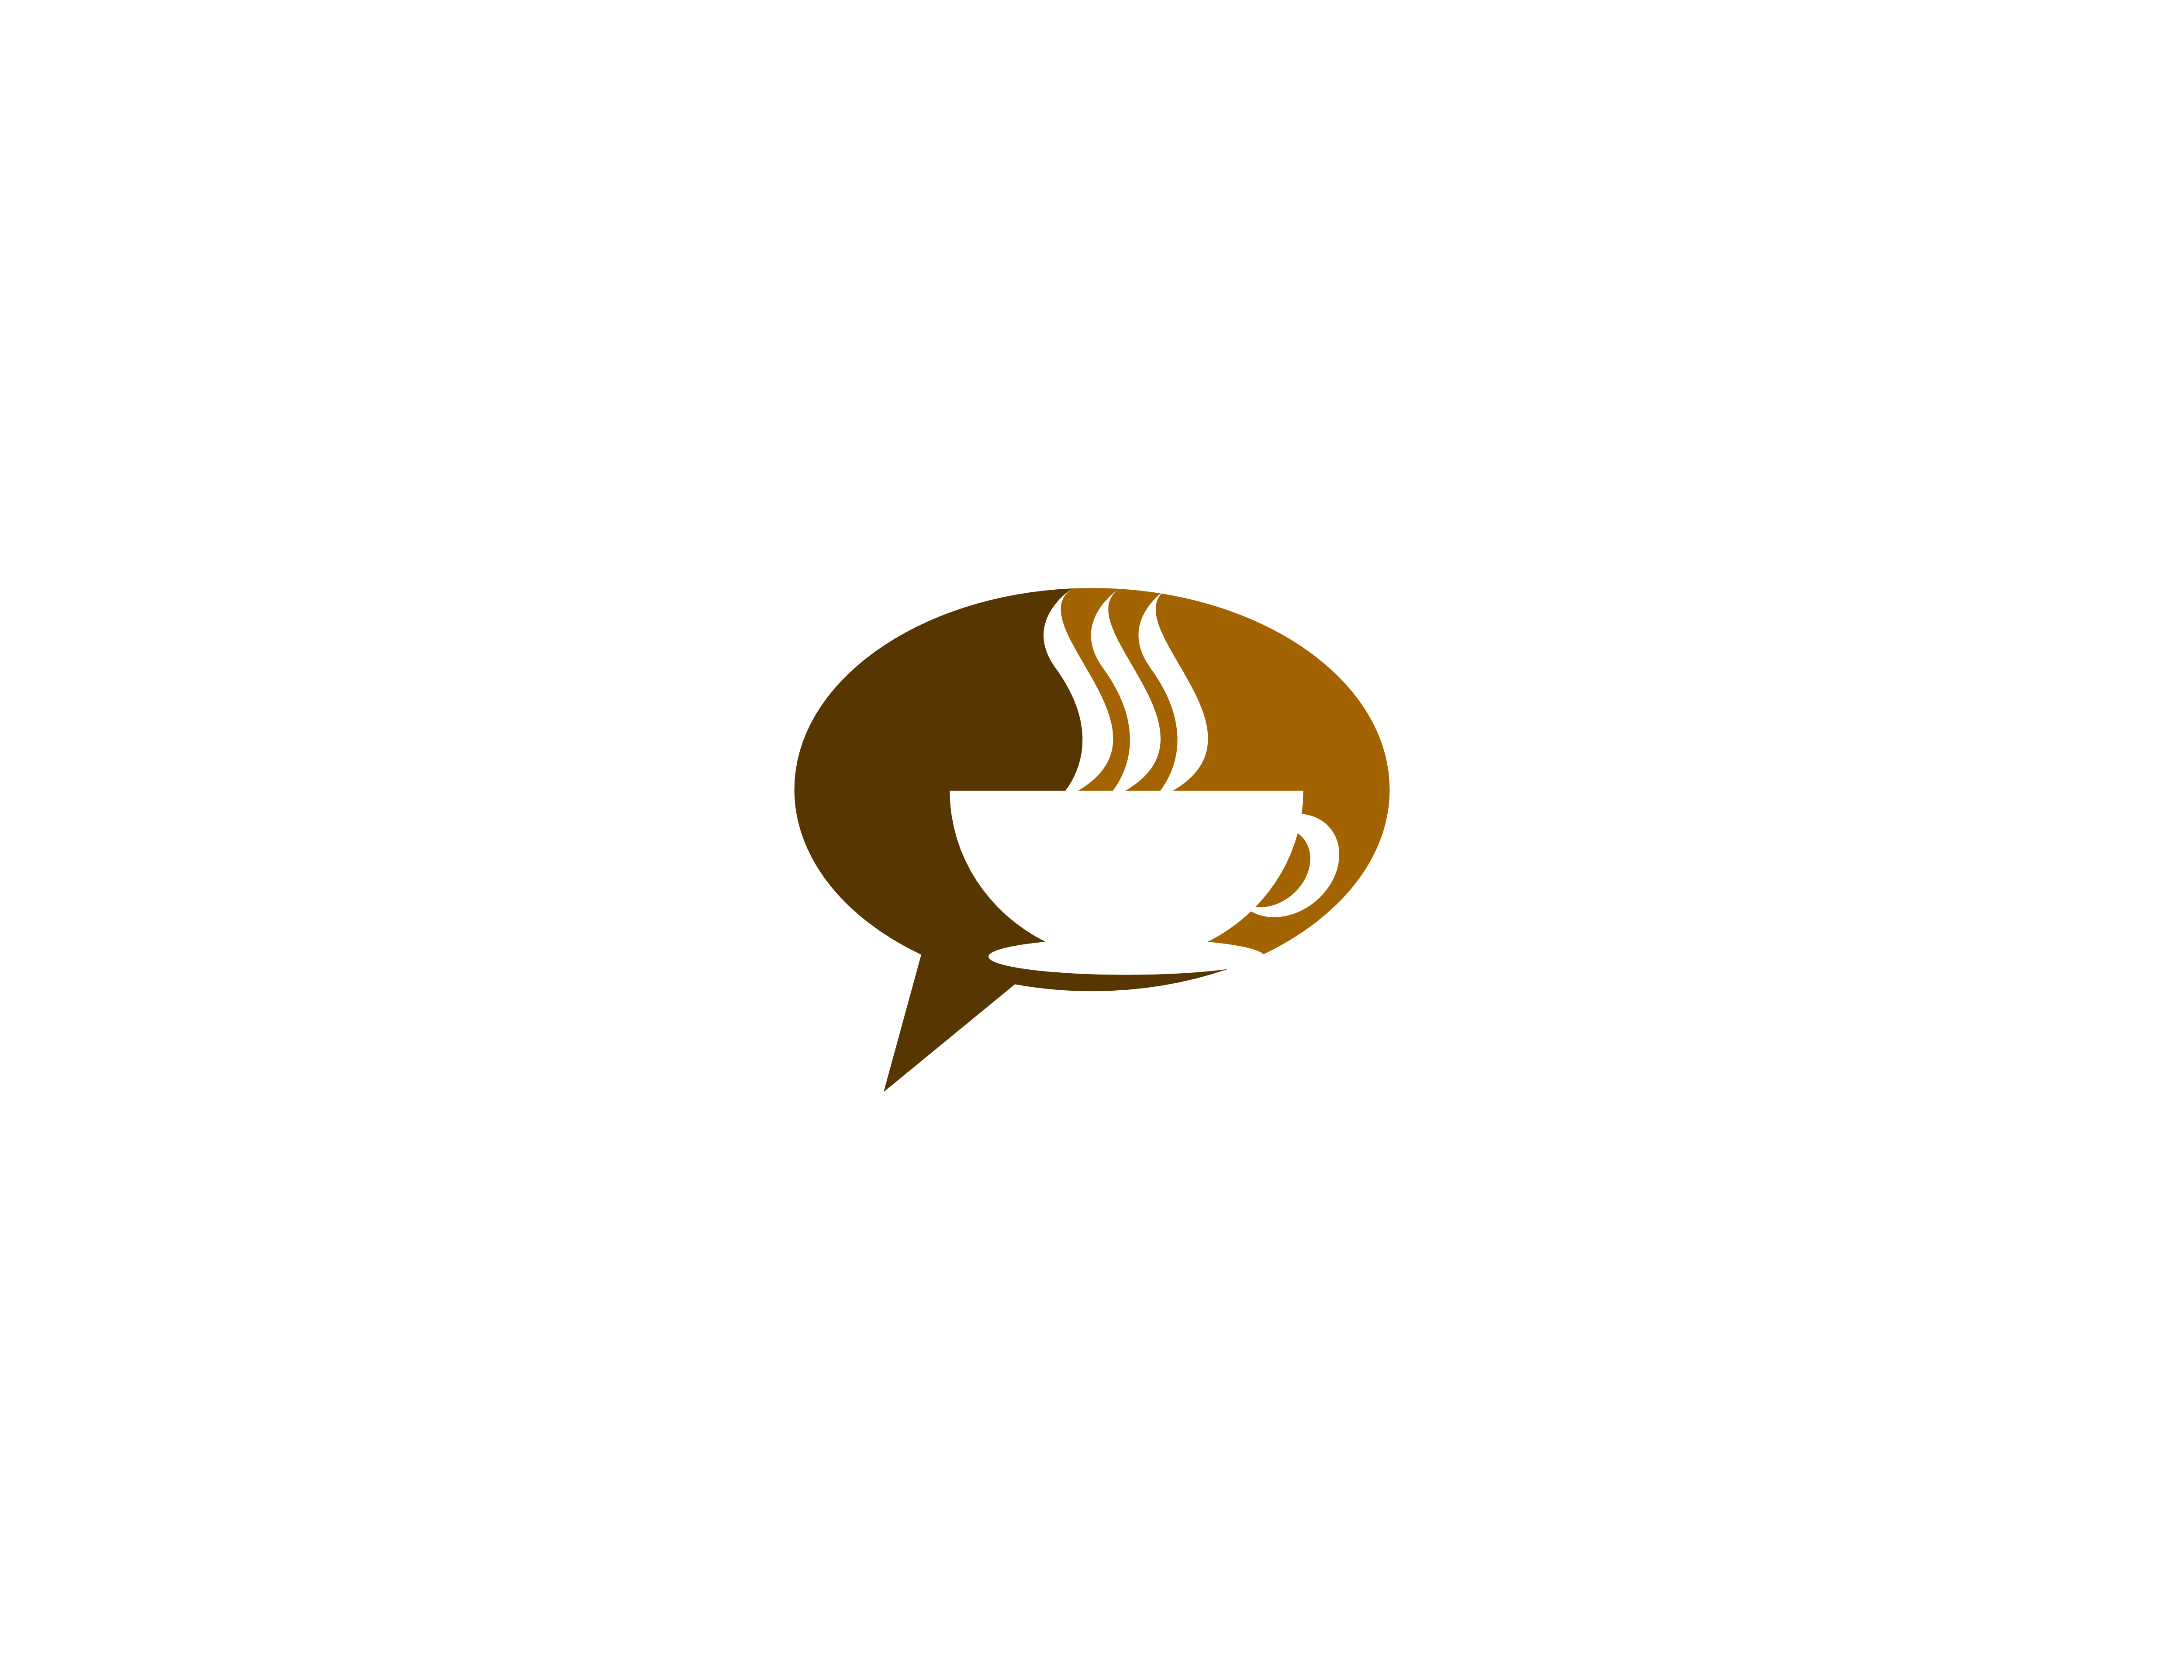 Download Free Coffee Chat Logo Graphic By Meisuseno Creative Fabrica for Cricut Explore, Silhouette and other cutting machines.